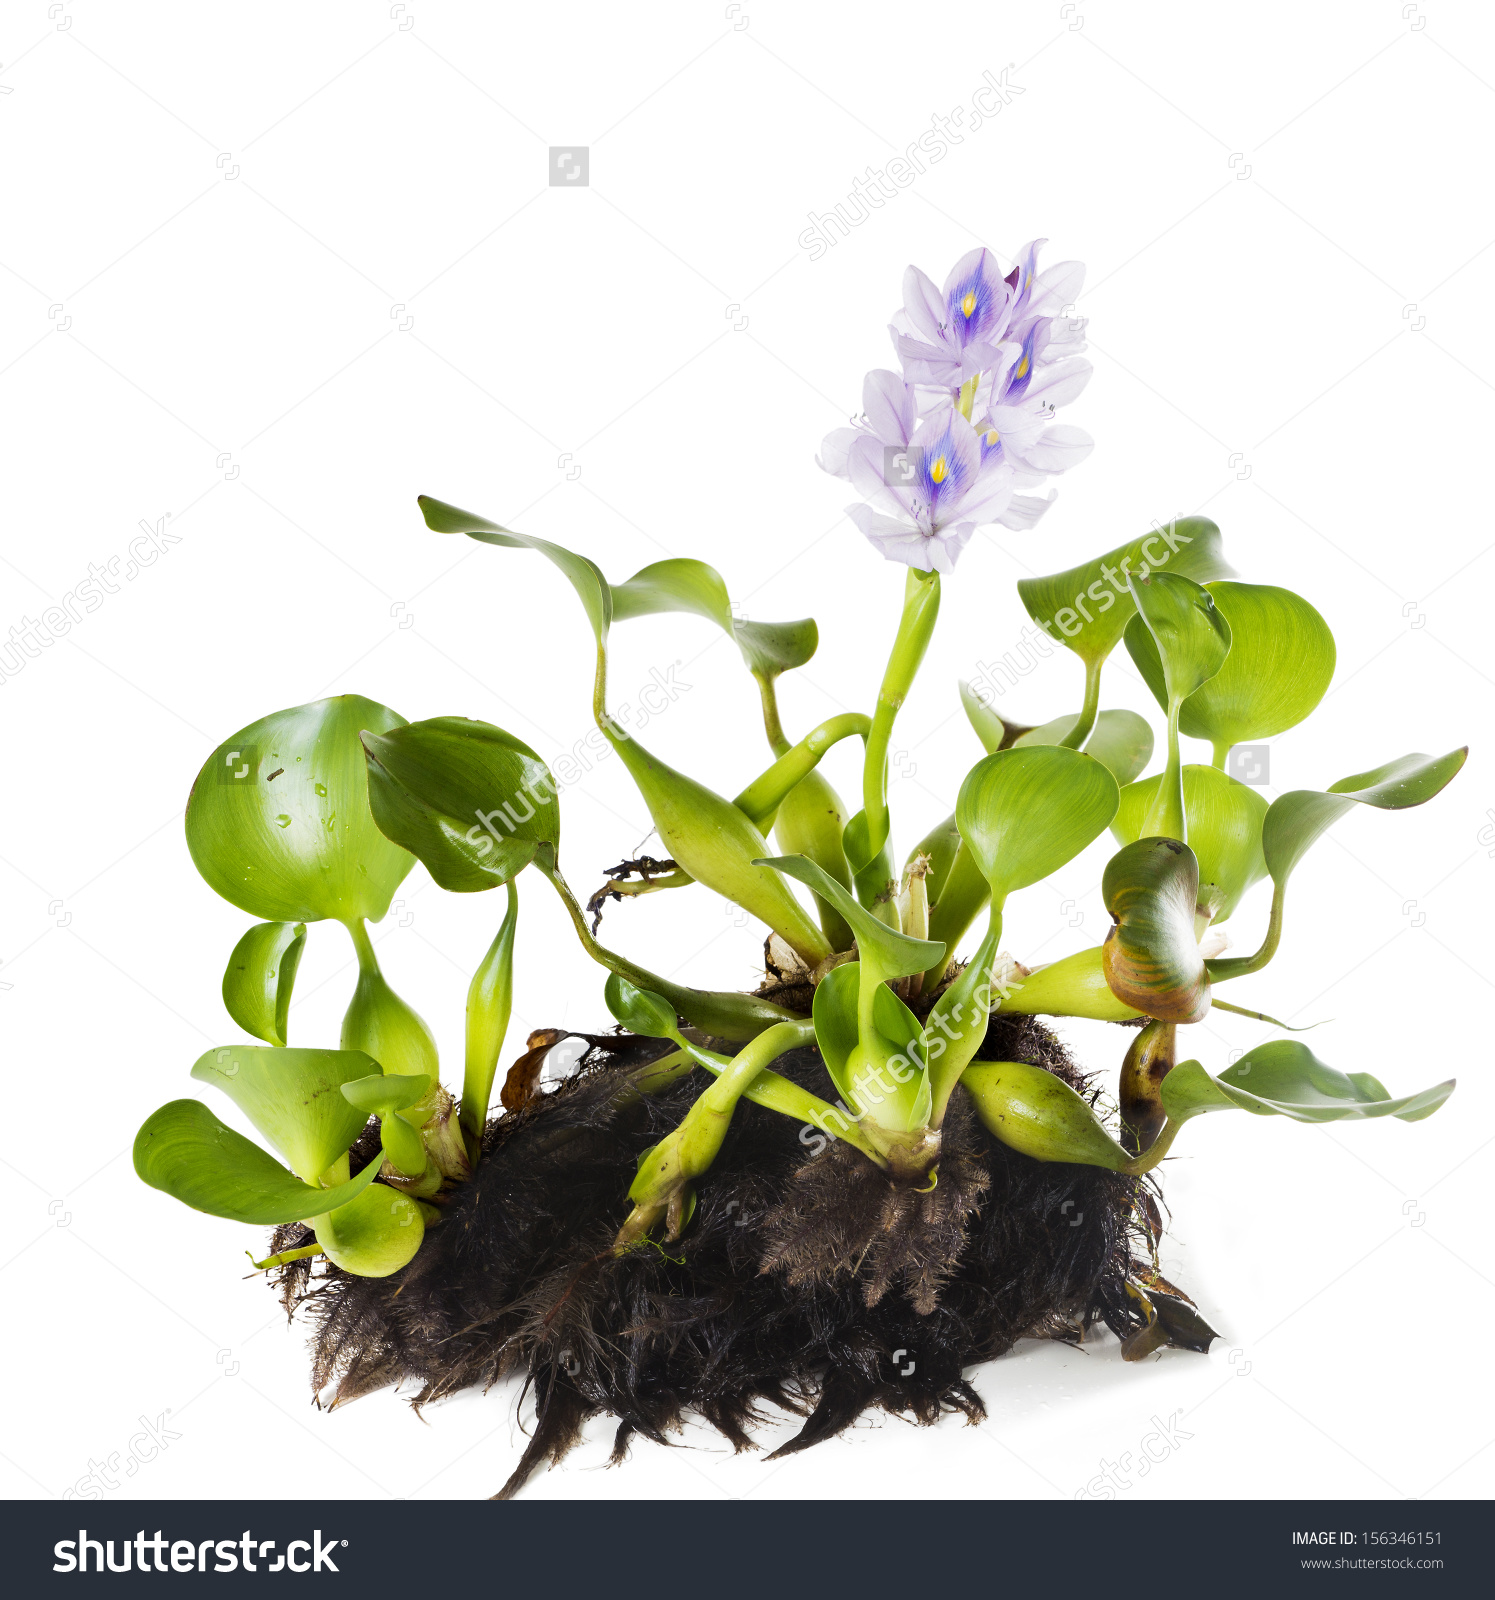 Common Water Hyacinth Eichhornia Crassipes Plant Stock Photo.